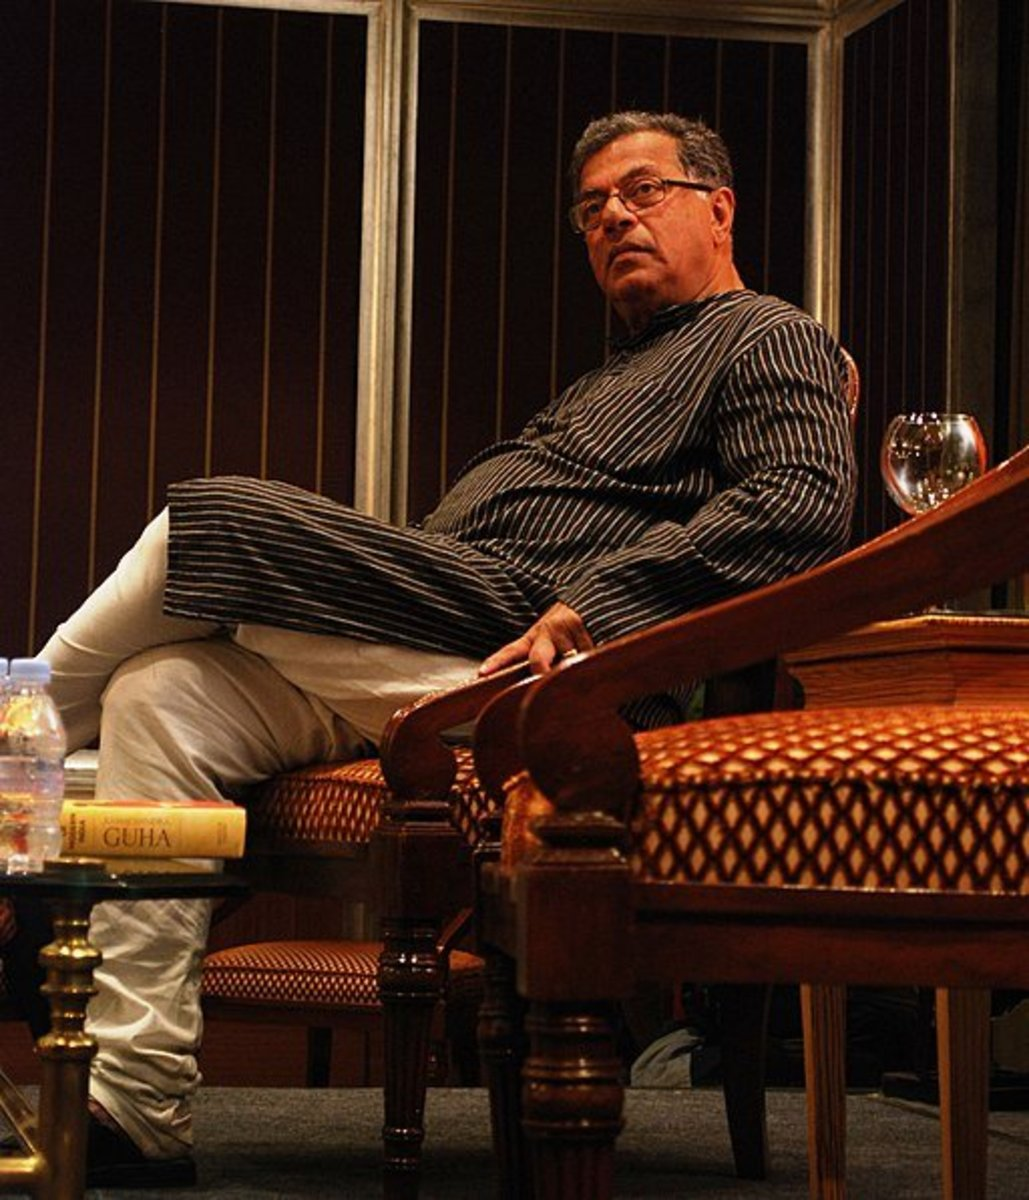 Girish Karnad, India